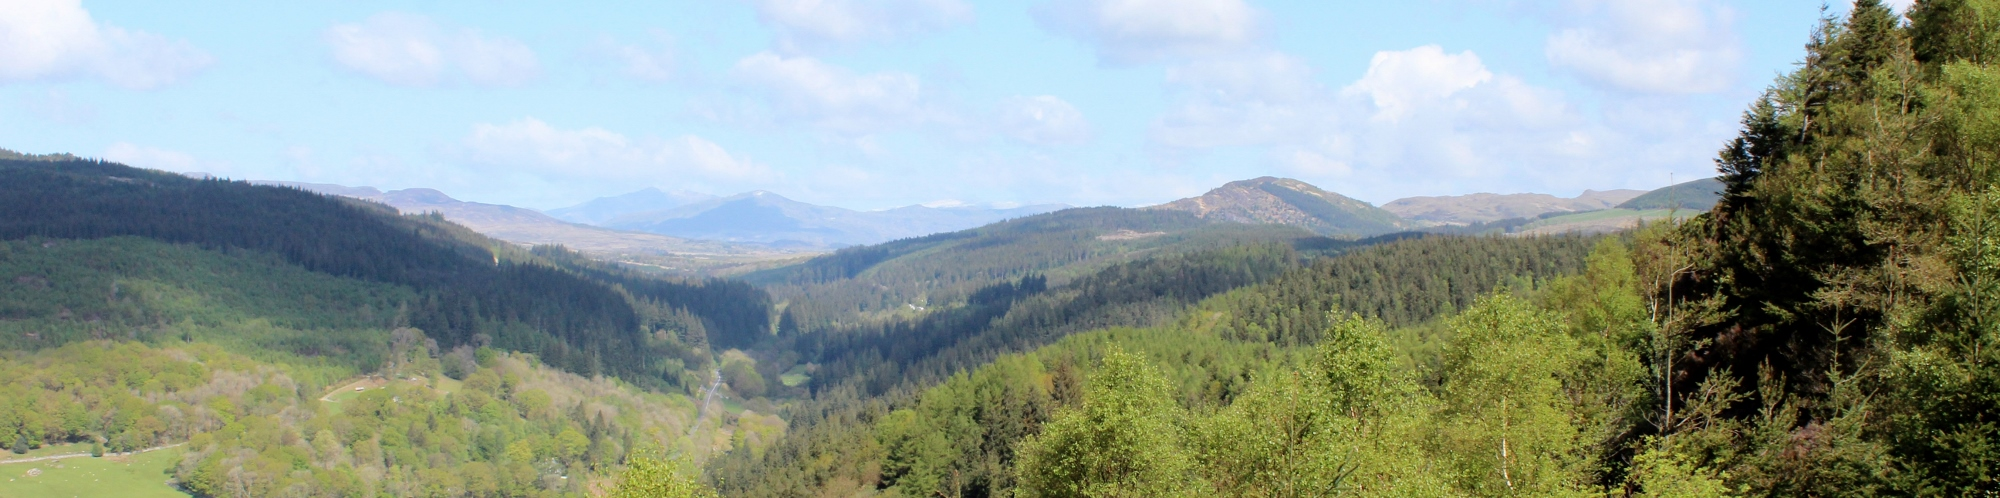 View of Cader Idris from Penrhos Mountain